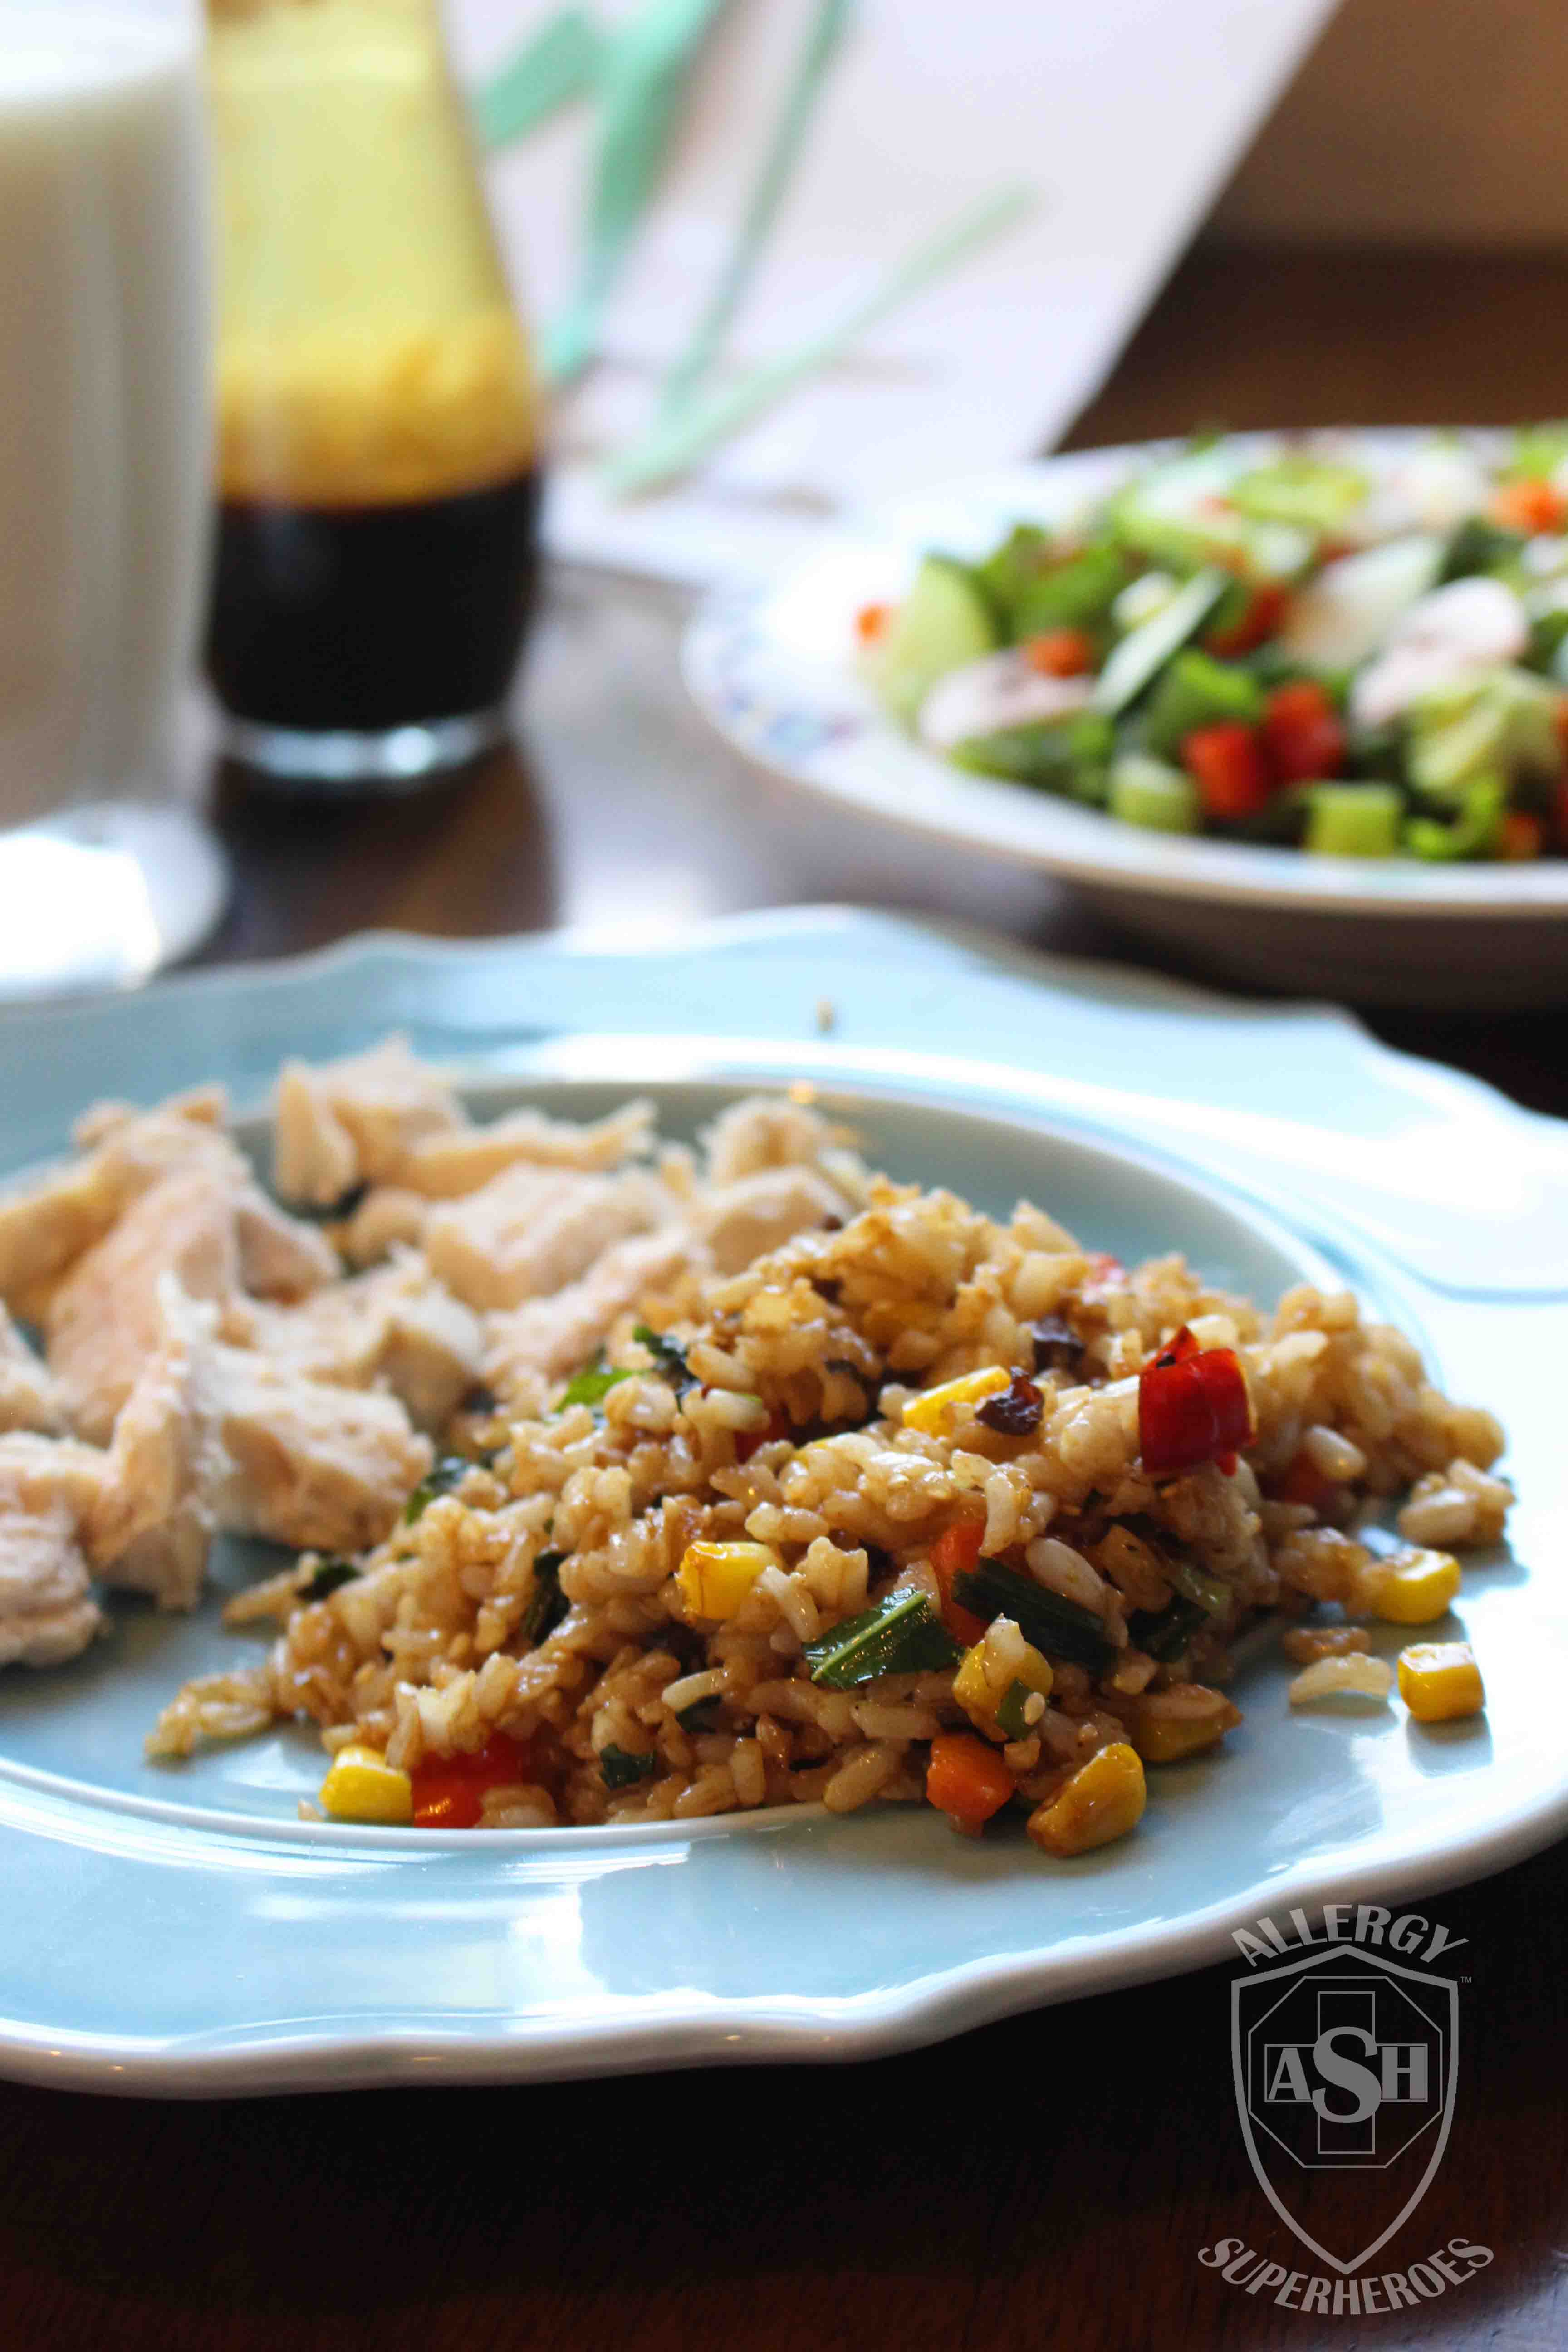 Egg-Free Fried Rice